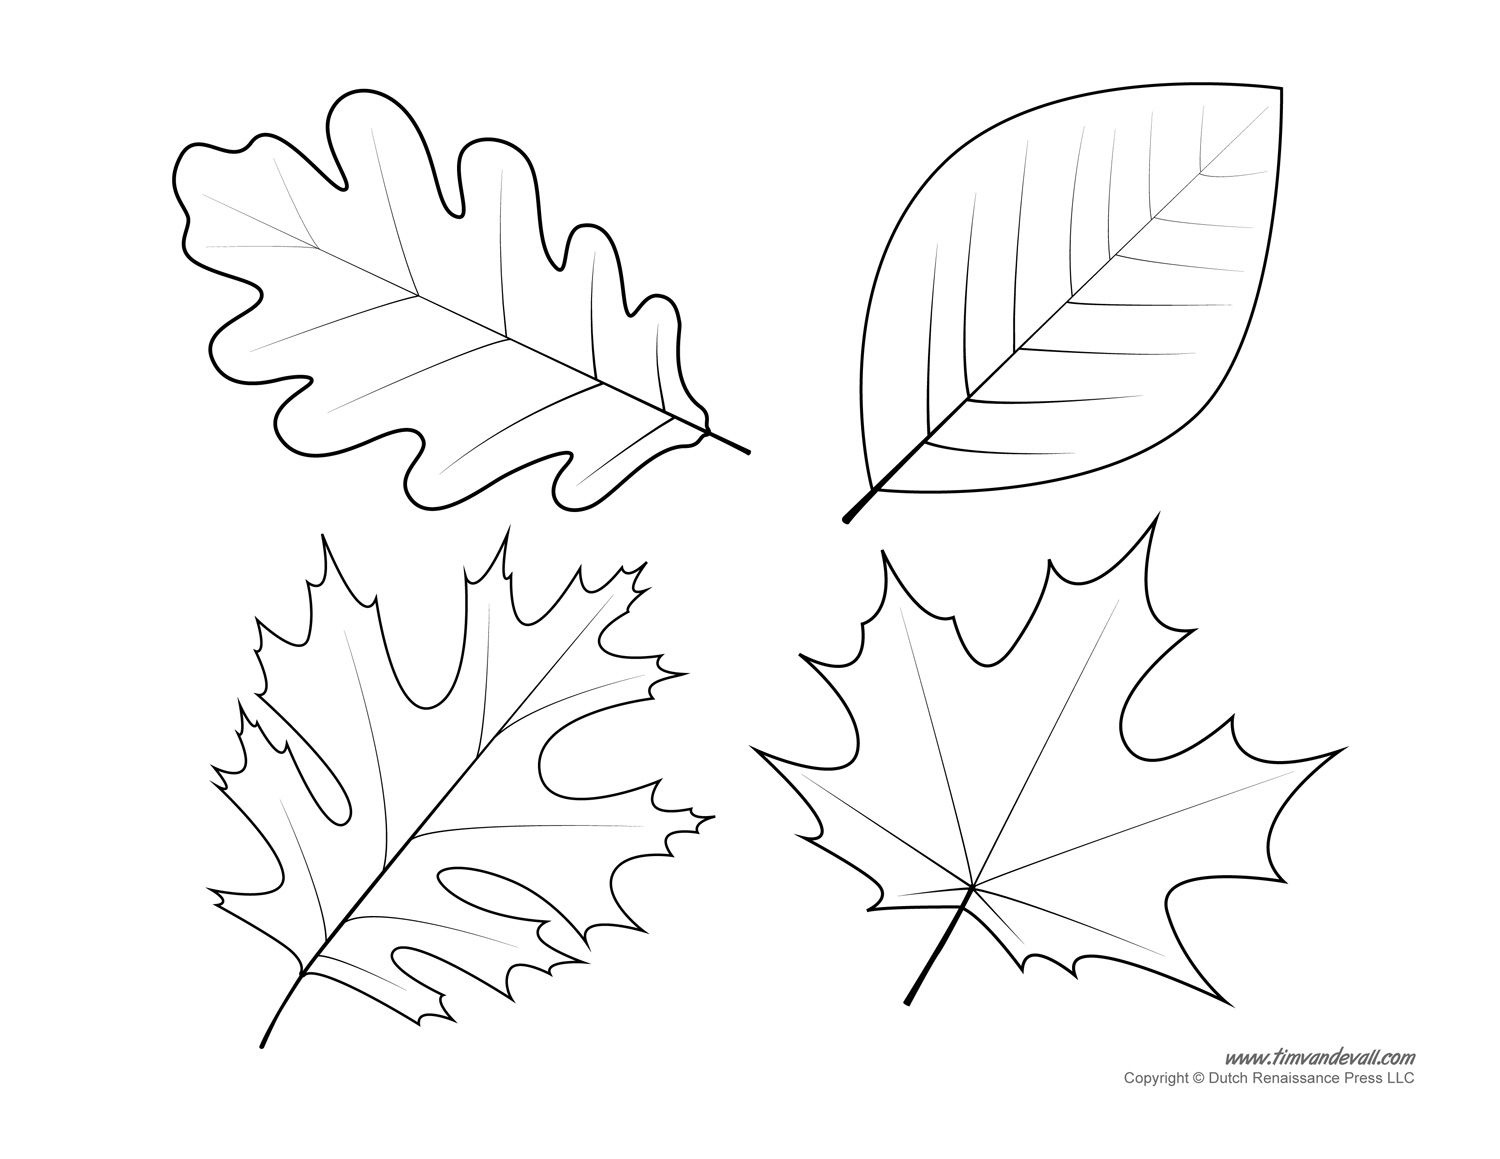 Leaf Templates & Leaf Coloring Pages For Kids | Leaf Printables - Free Printable Leaf Template